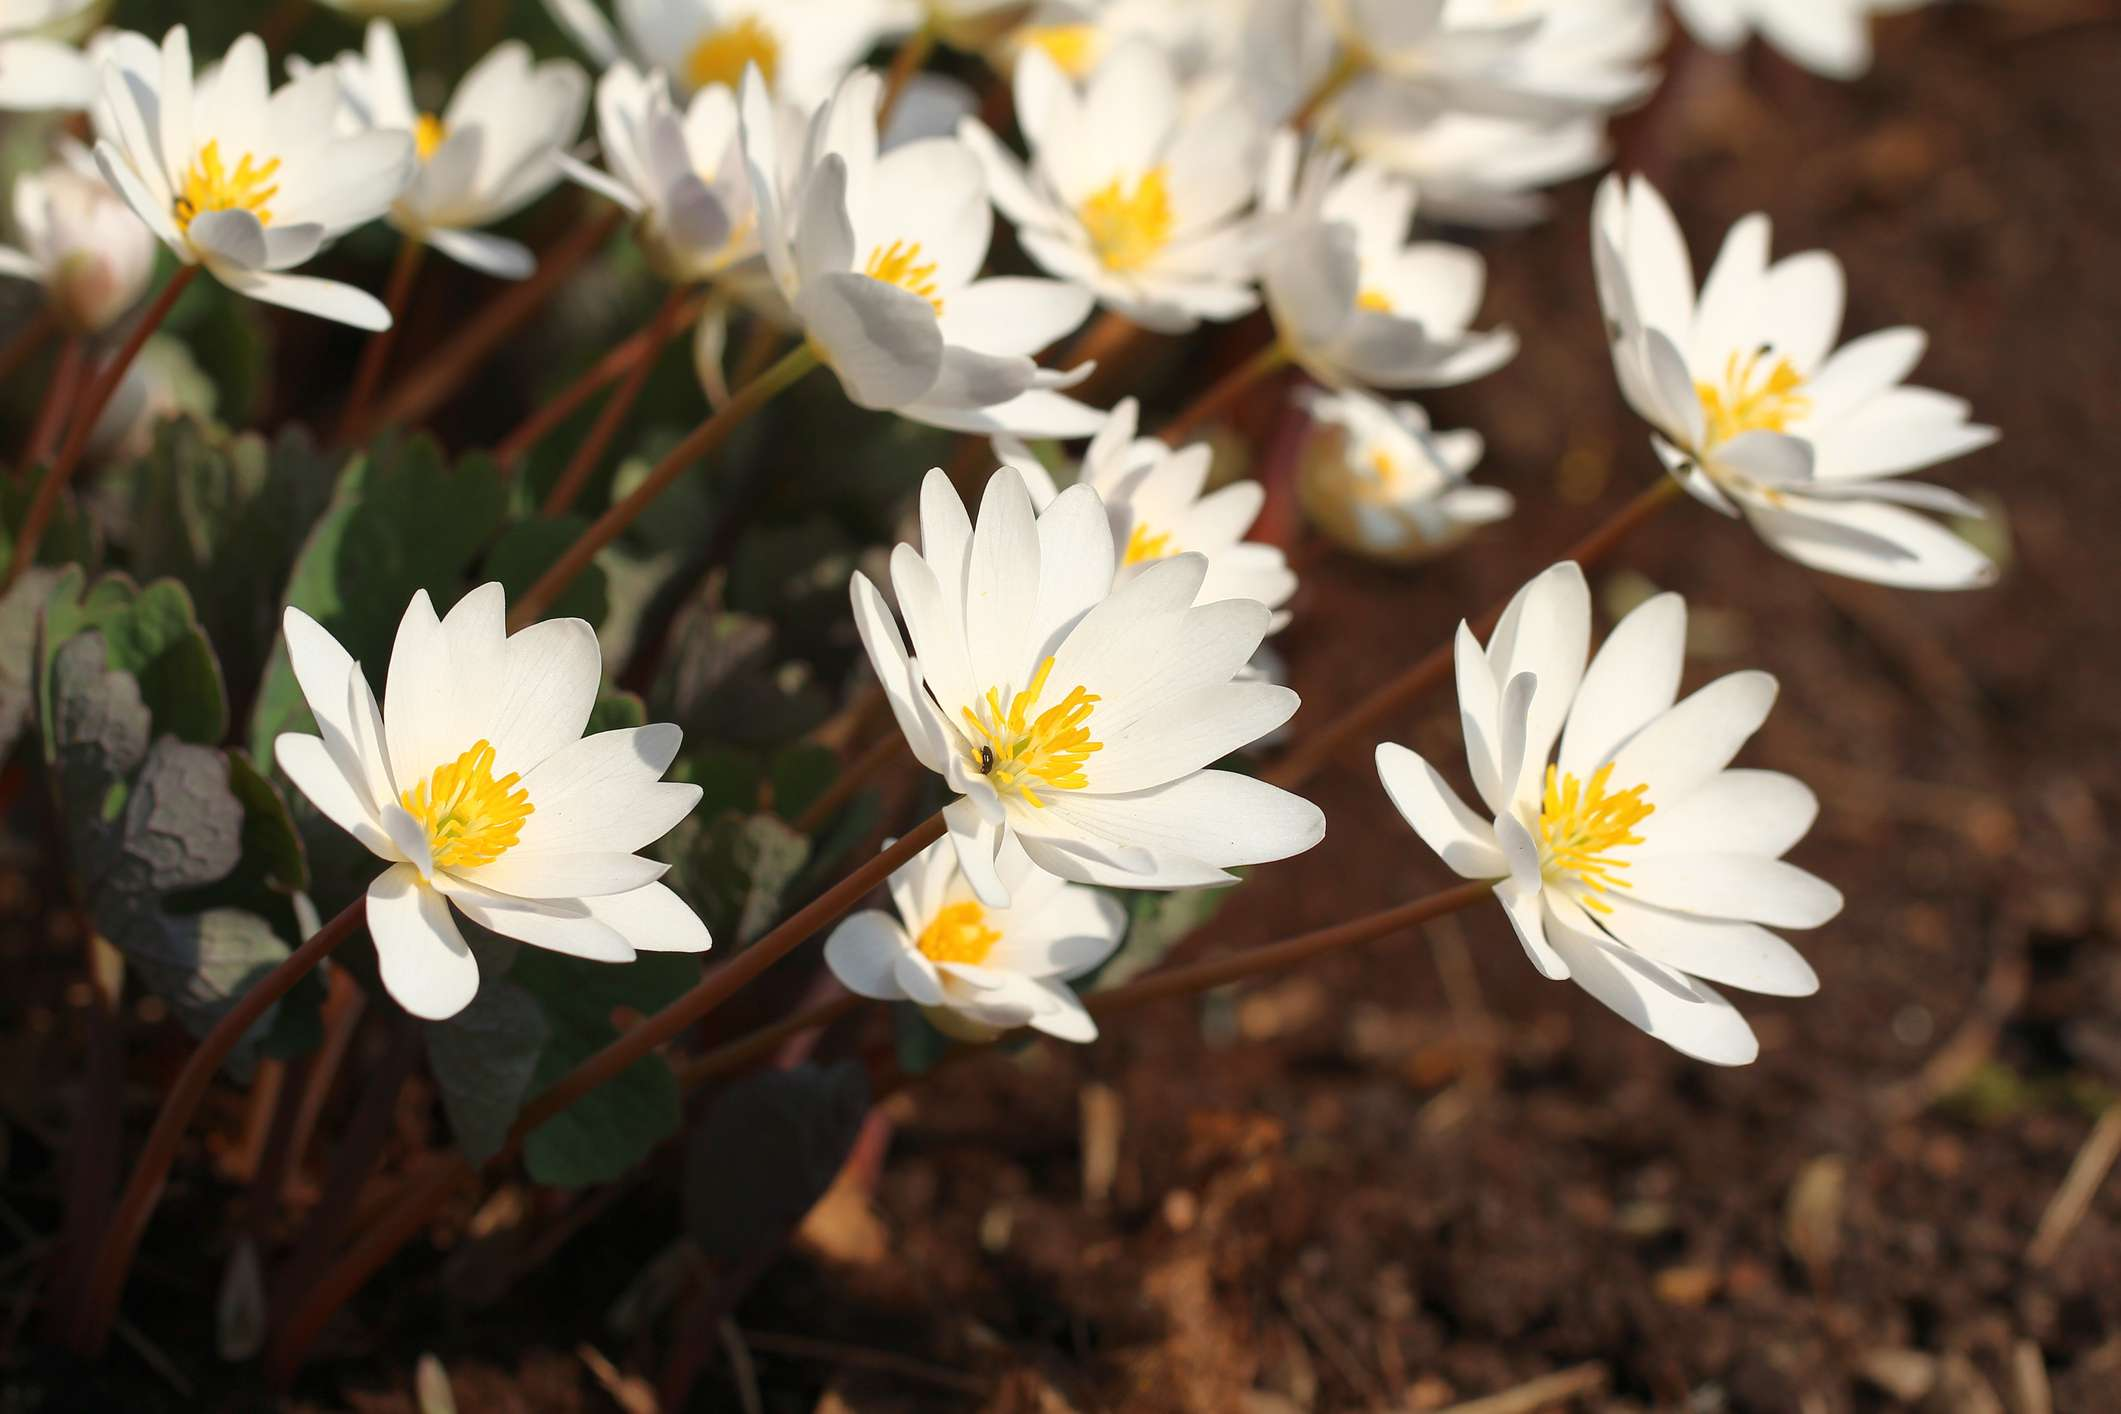 white and yellow bloodroot flowers in garden